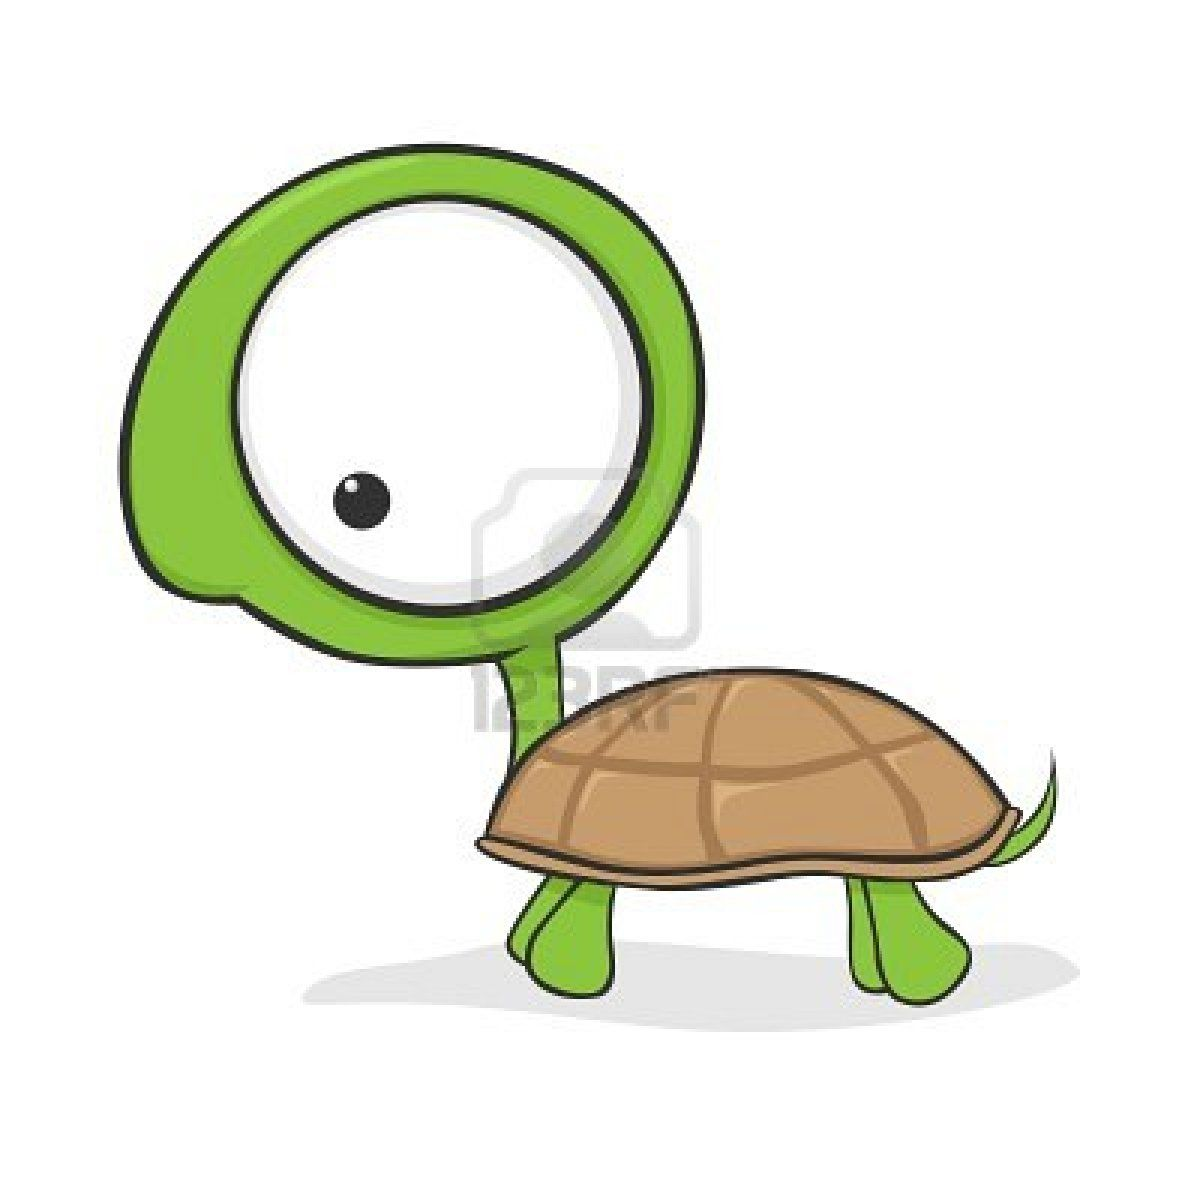 Cute cartoon turtle with huge eyes Stock Photo | illustrations ...